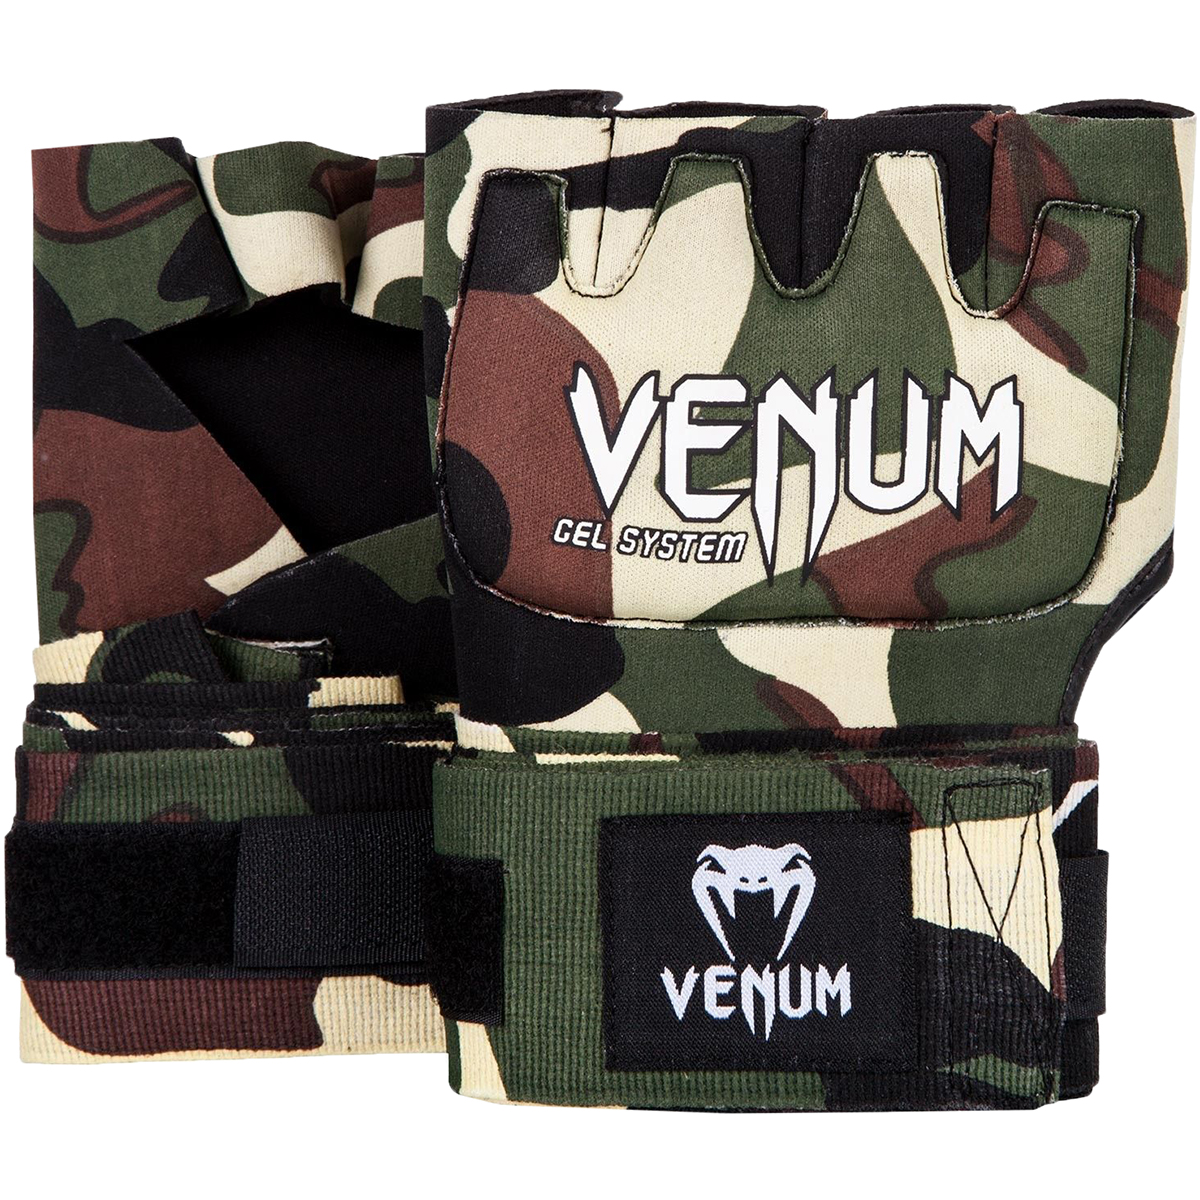 Venum-Kontact-Protective-Shock-Absorbing-Gel-MMA-Glove-Wraps thumbnail 23